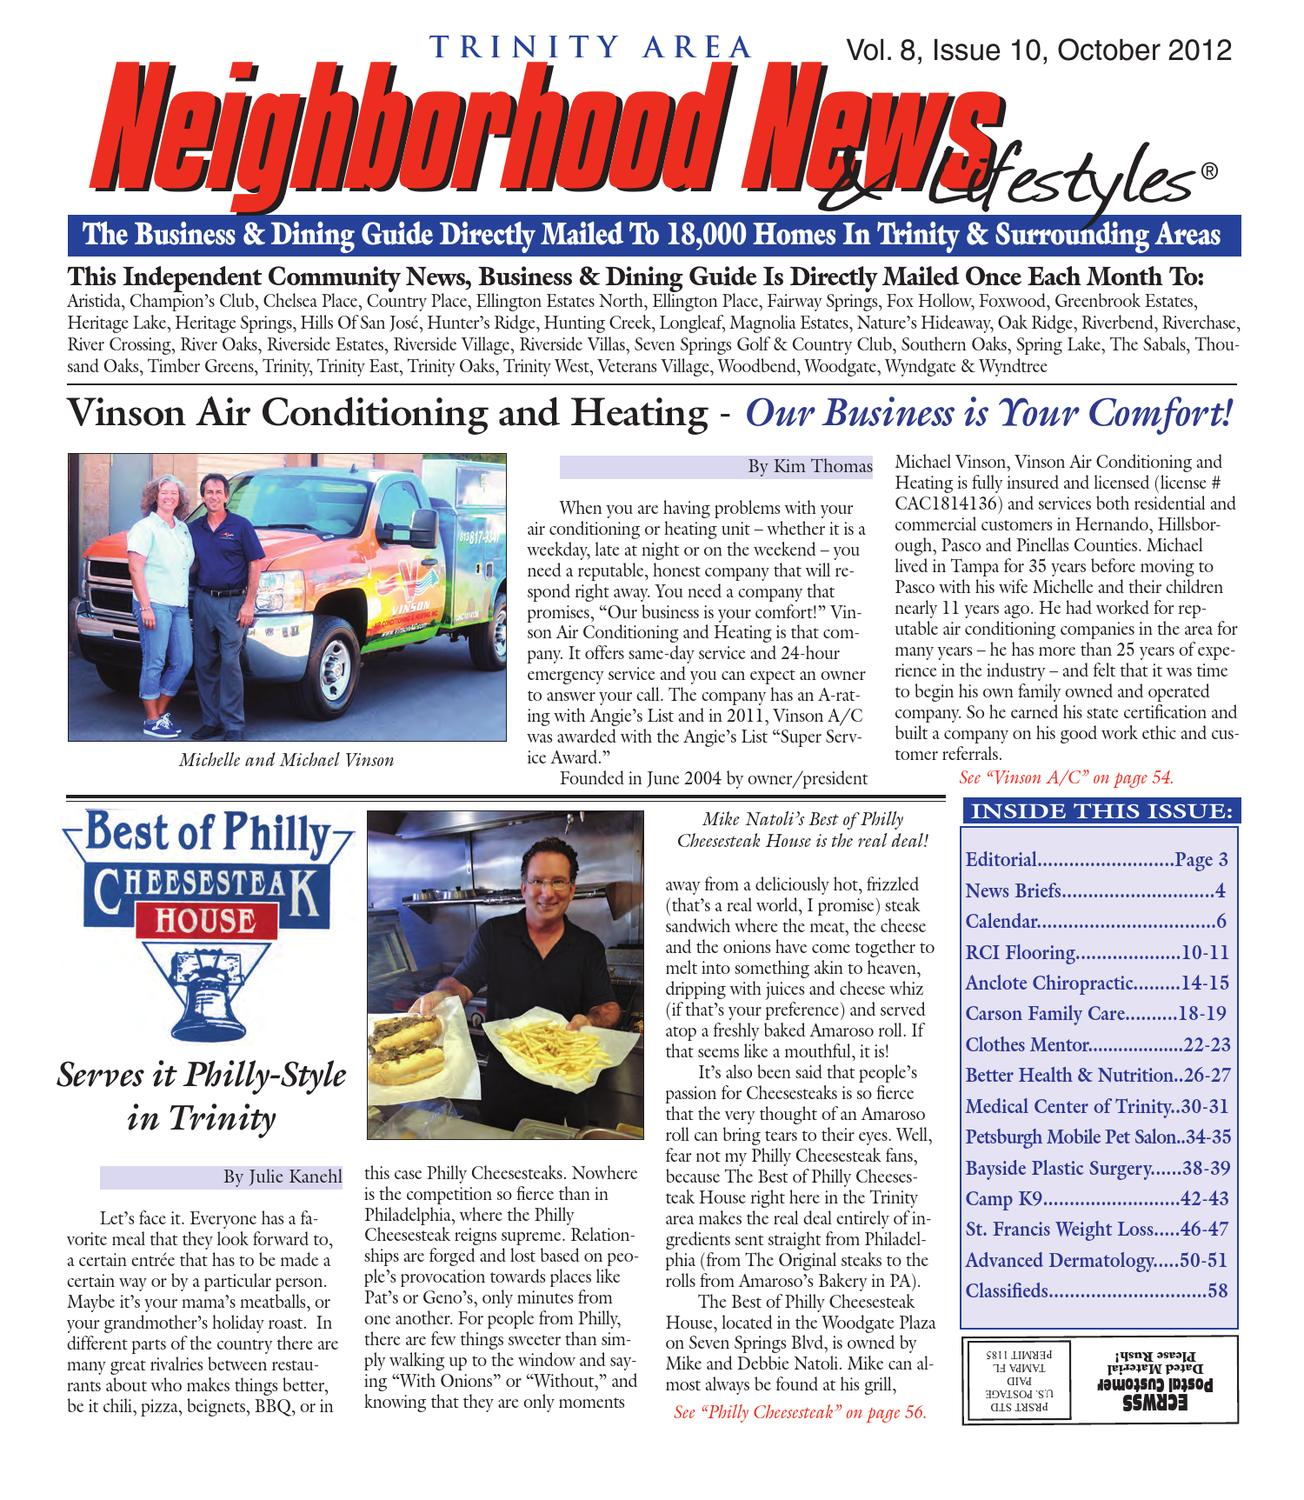 Trinity - Vol  8, Issue 10, October 2012 by Tampa Bay News